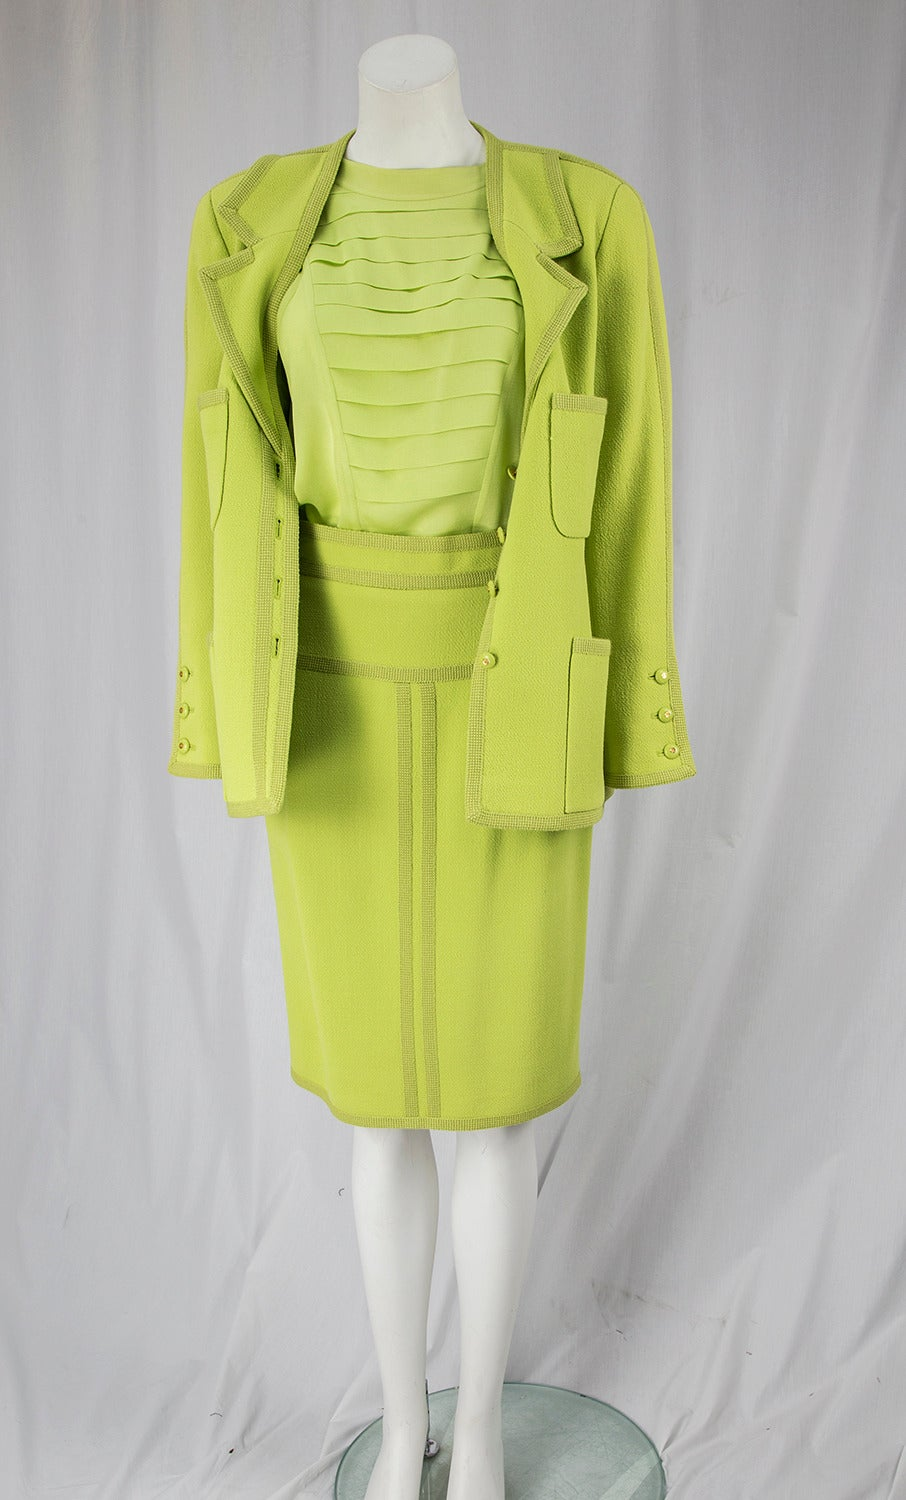 CHANEL BOUTIQUE Chartreuse Green Suit Signature Chanel In Excellent Condition For Sale In Montreal, QC